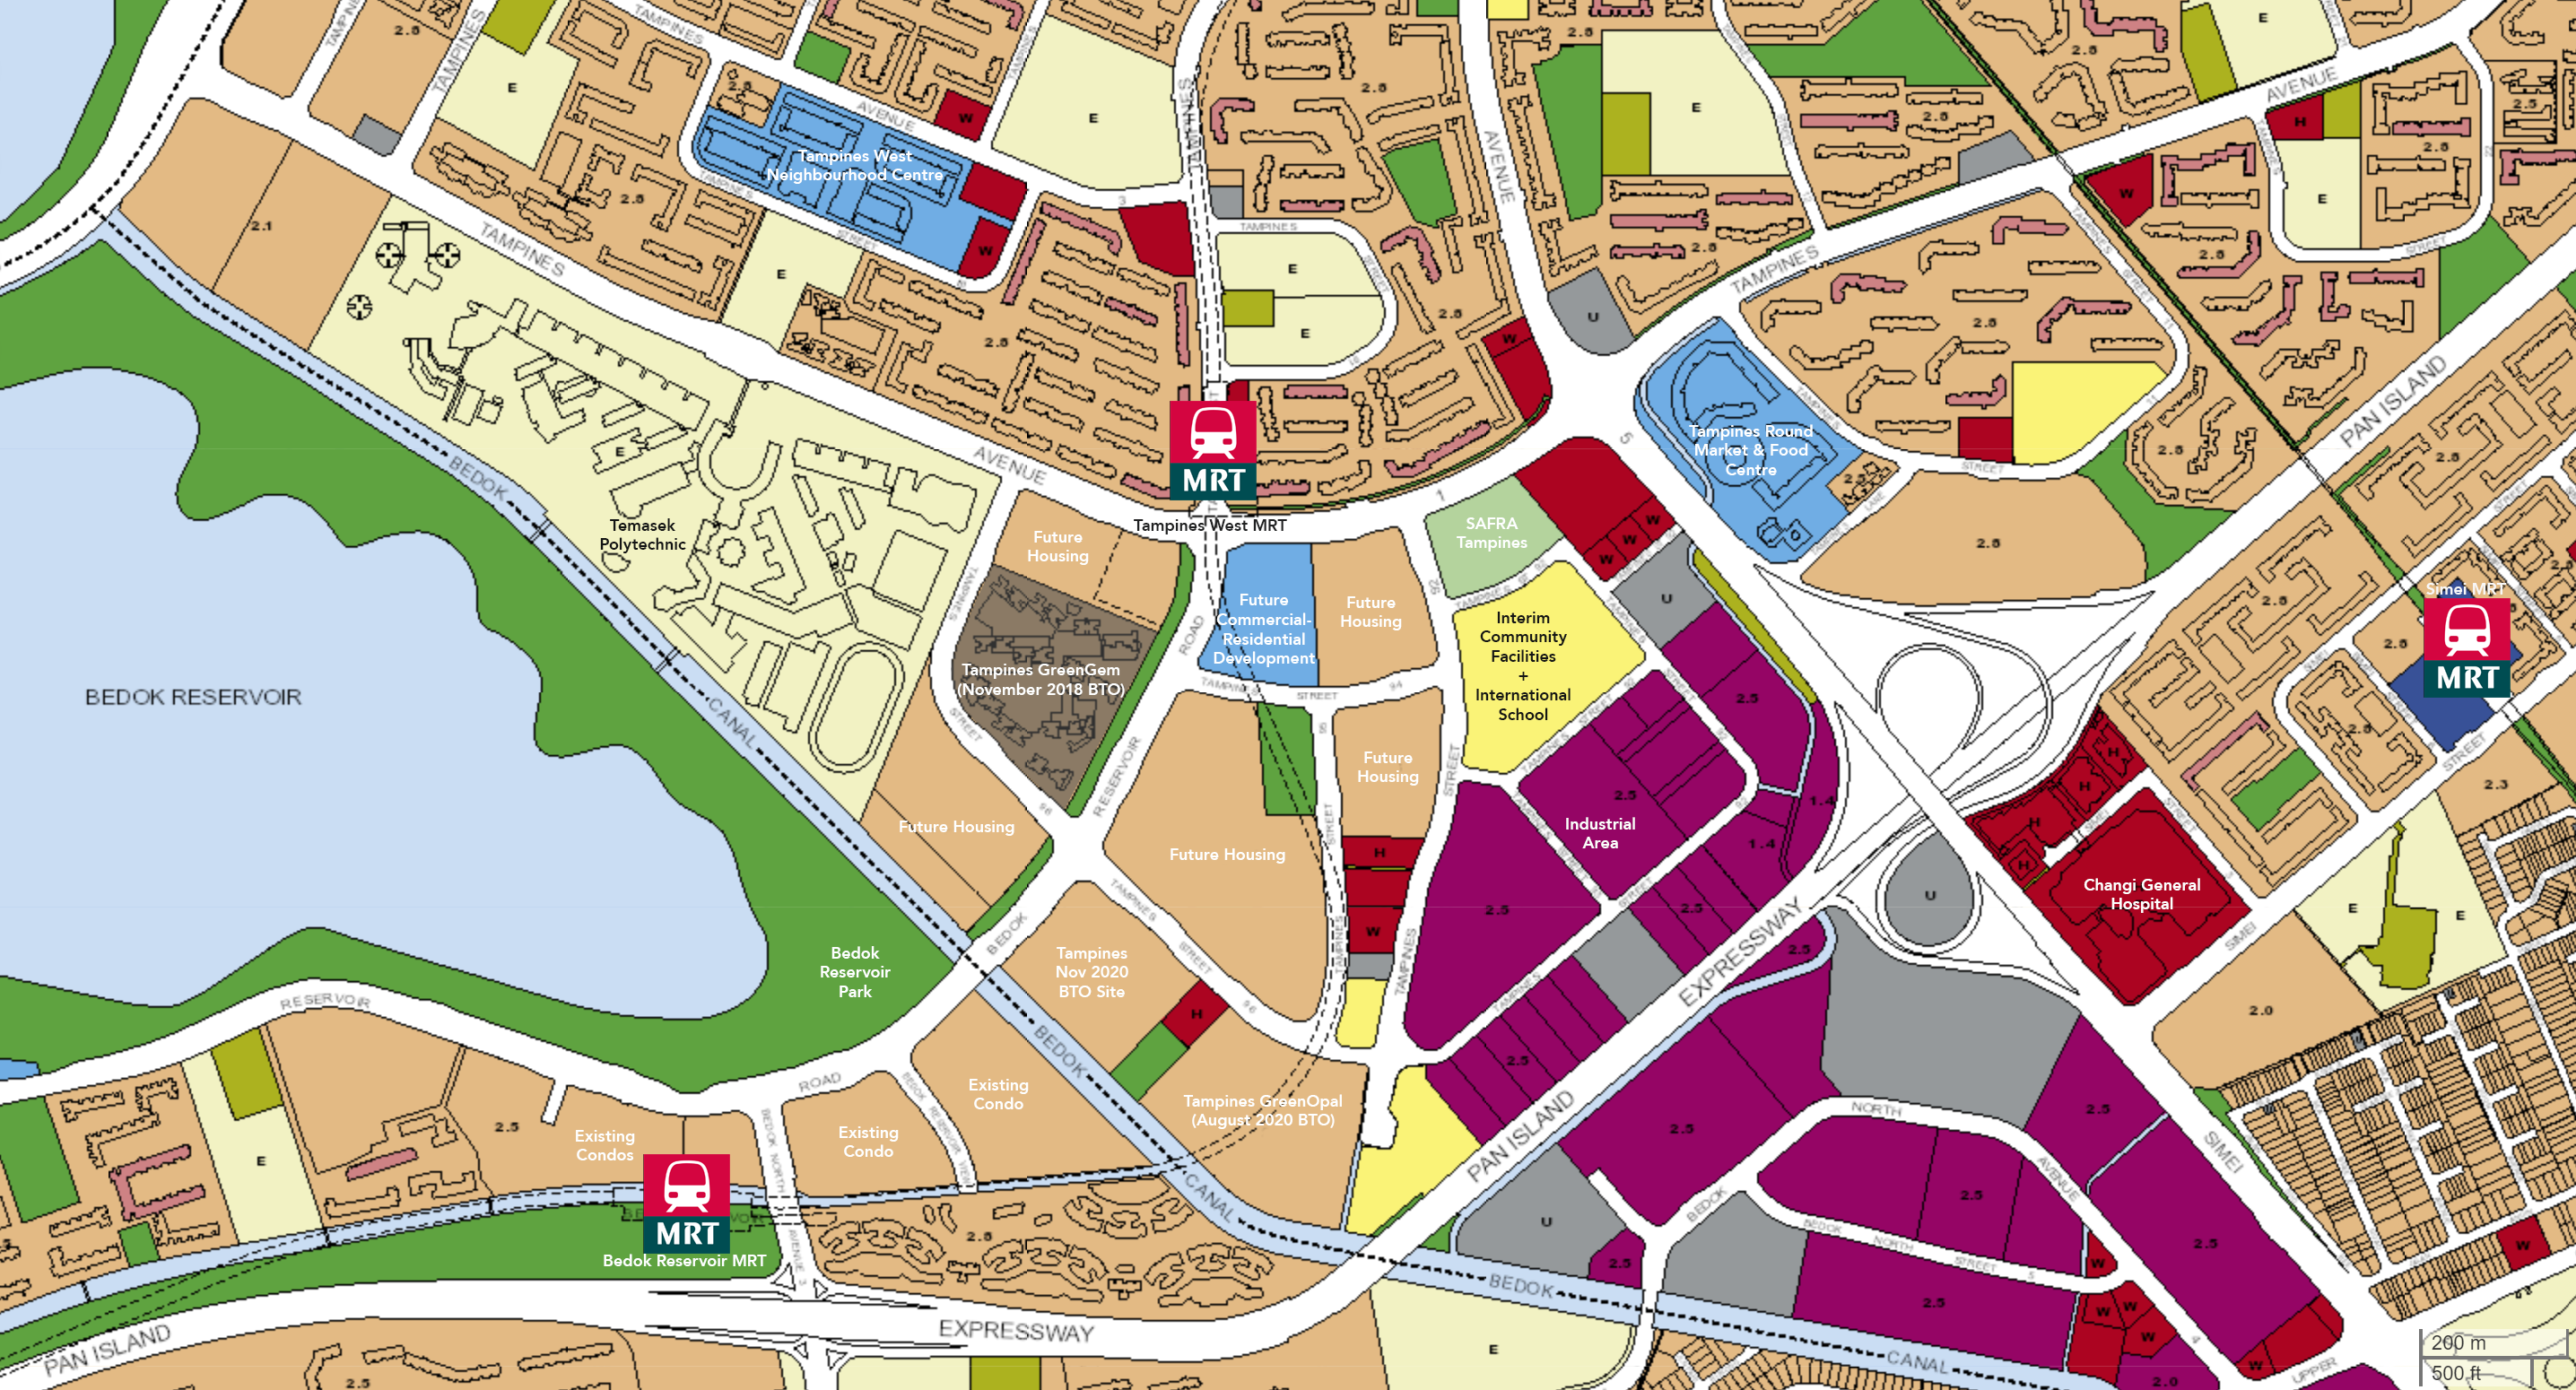 ura master plan hdb nov 2020 tampines bto map